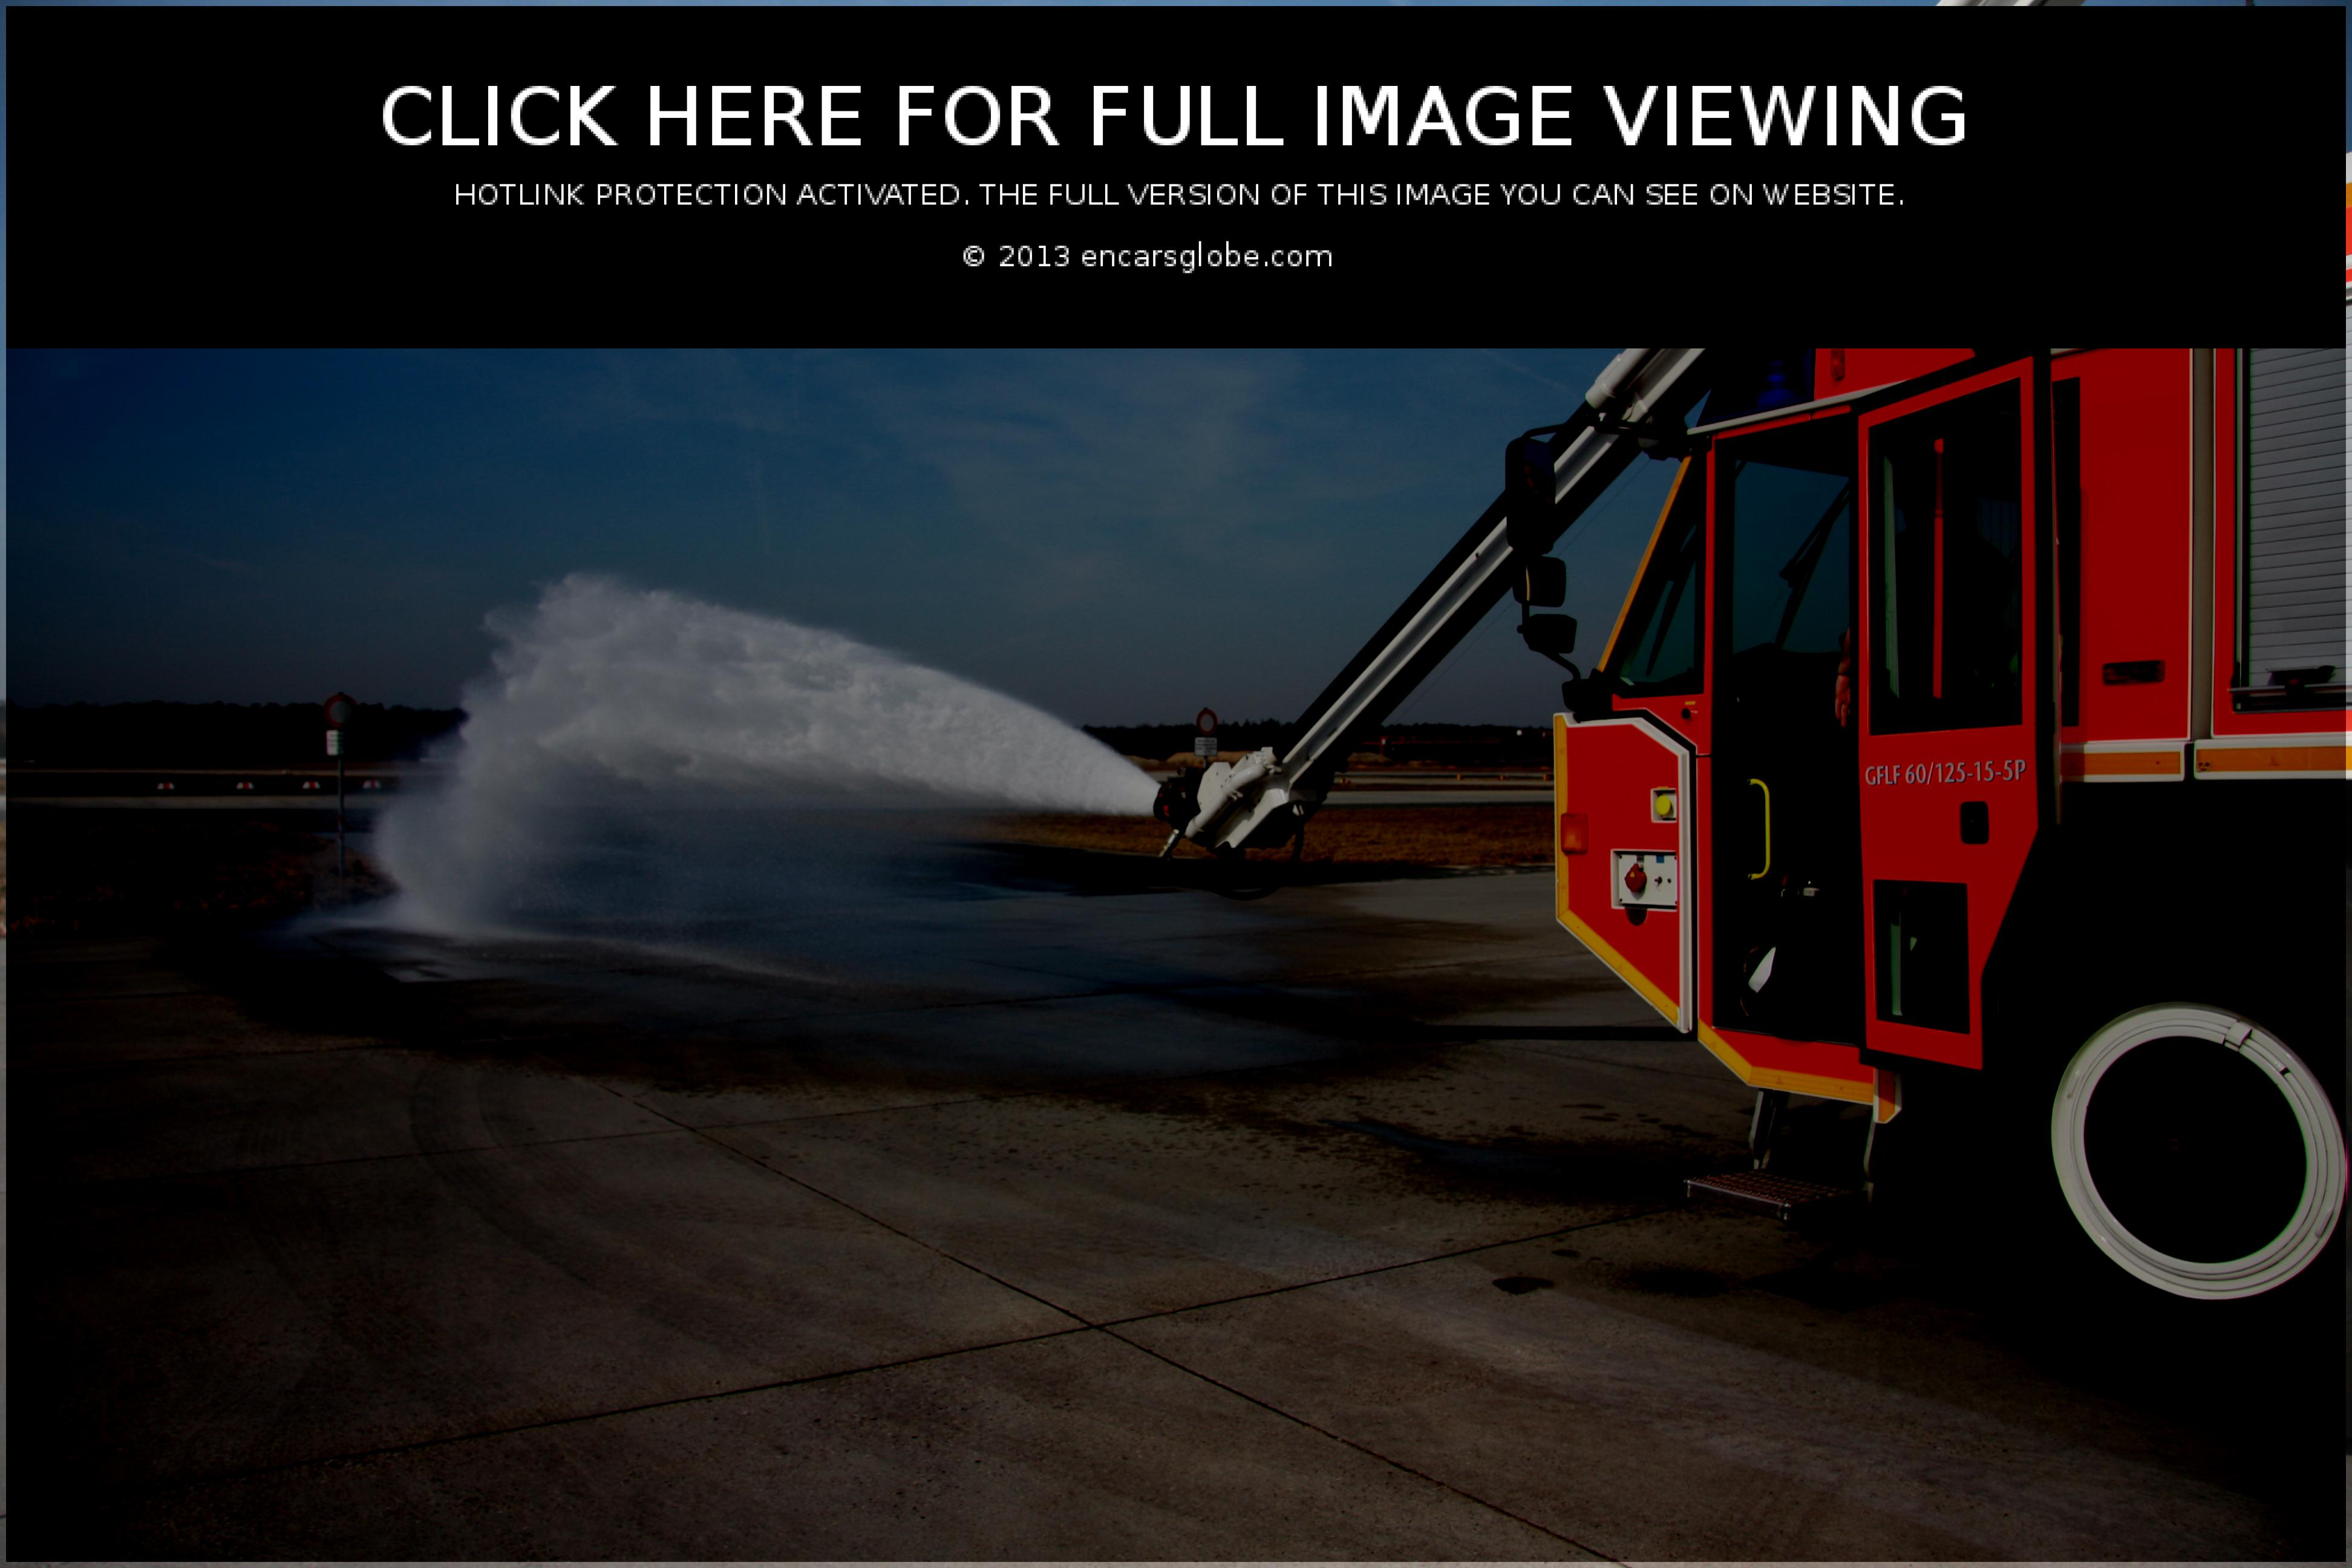 Rosenbauer Panther FL 6x6 Photo Gallery: Photo #10 out of 10 ...